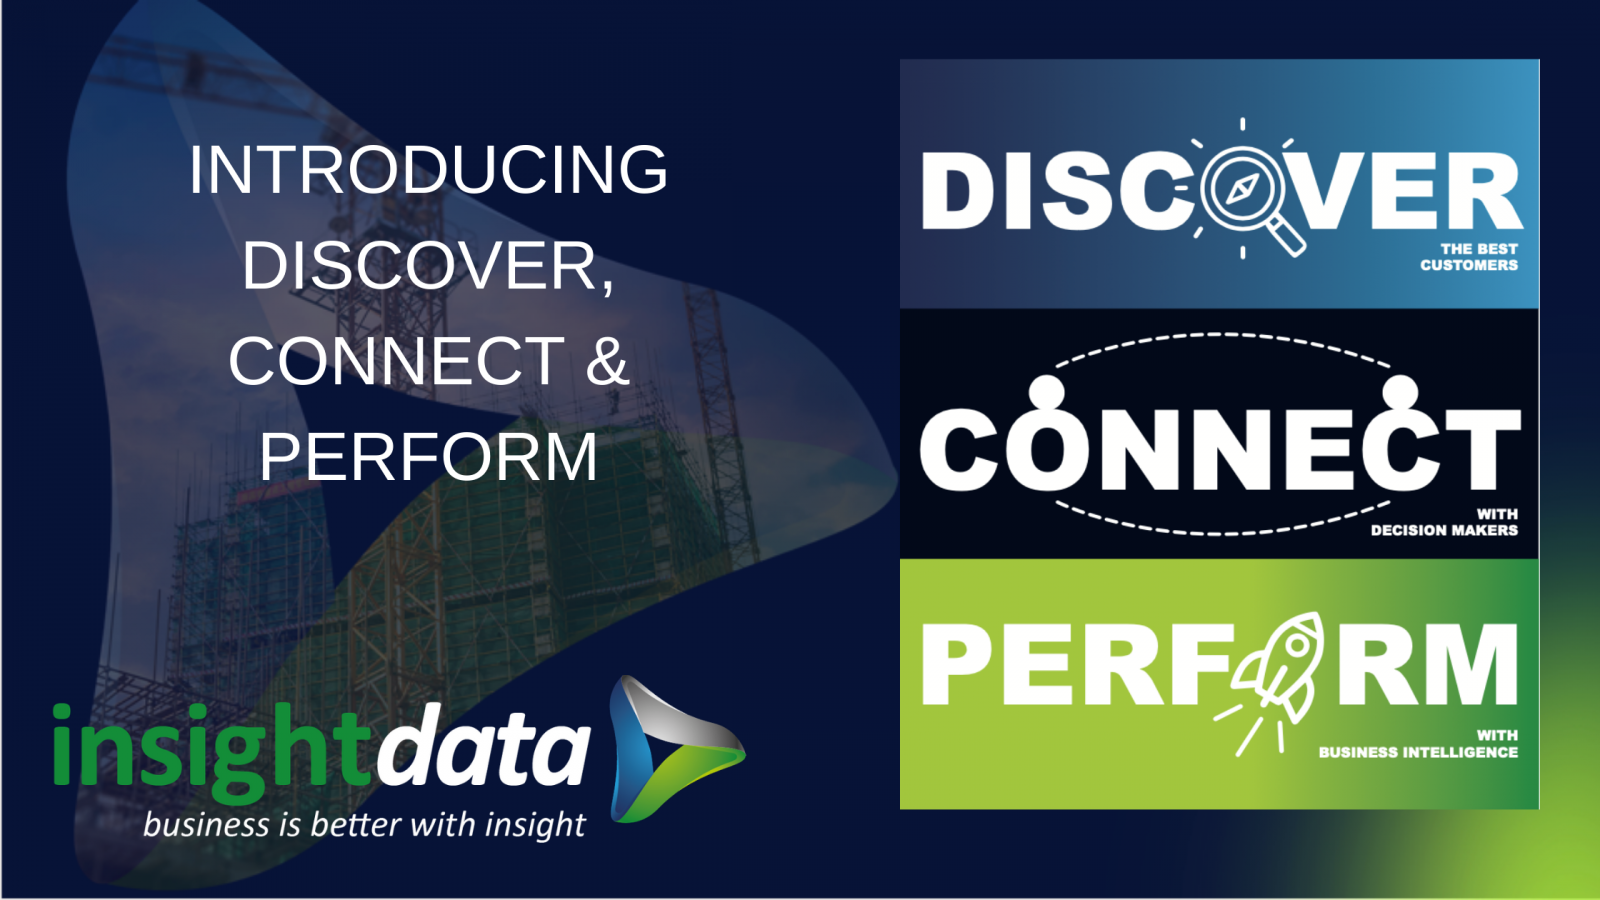 INTRODUCING DISOCVER, CONNECT AND PERFORM card representing Insight Data